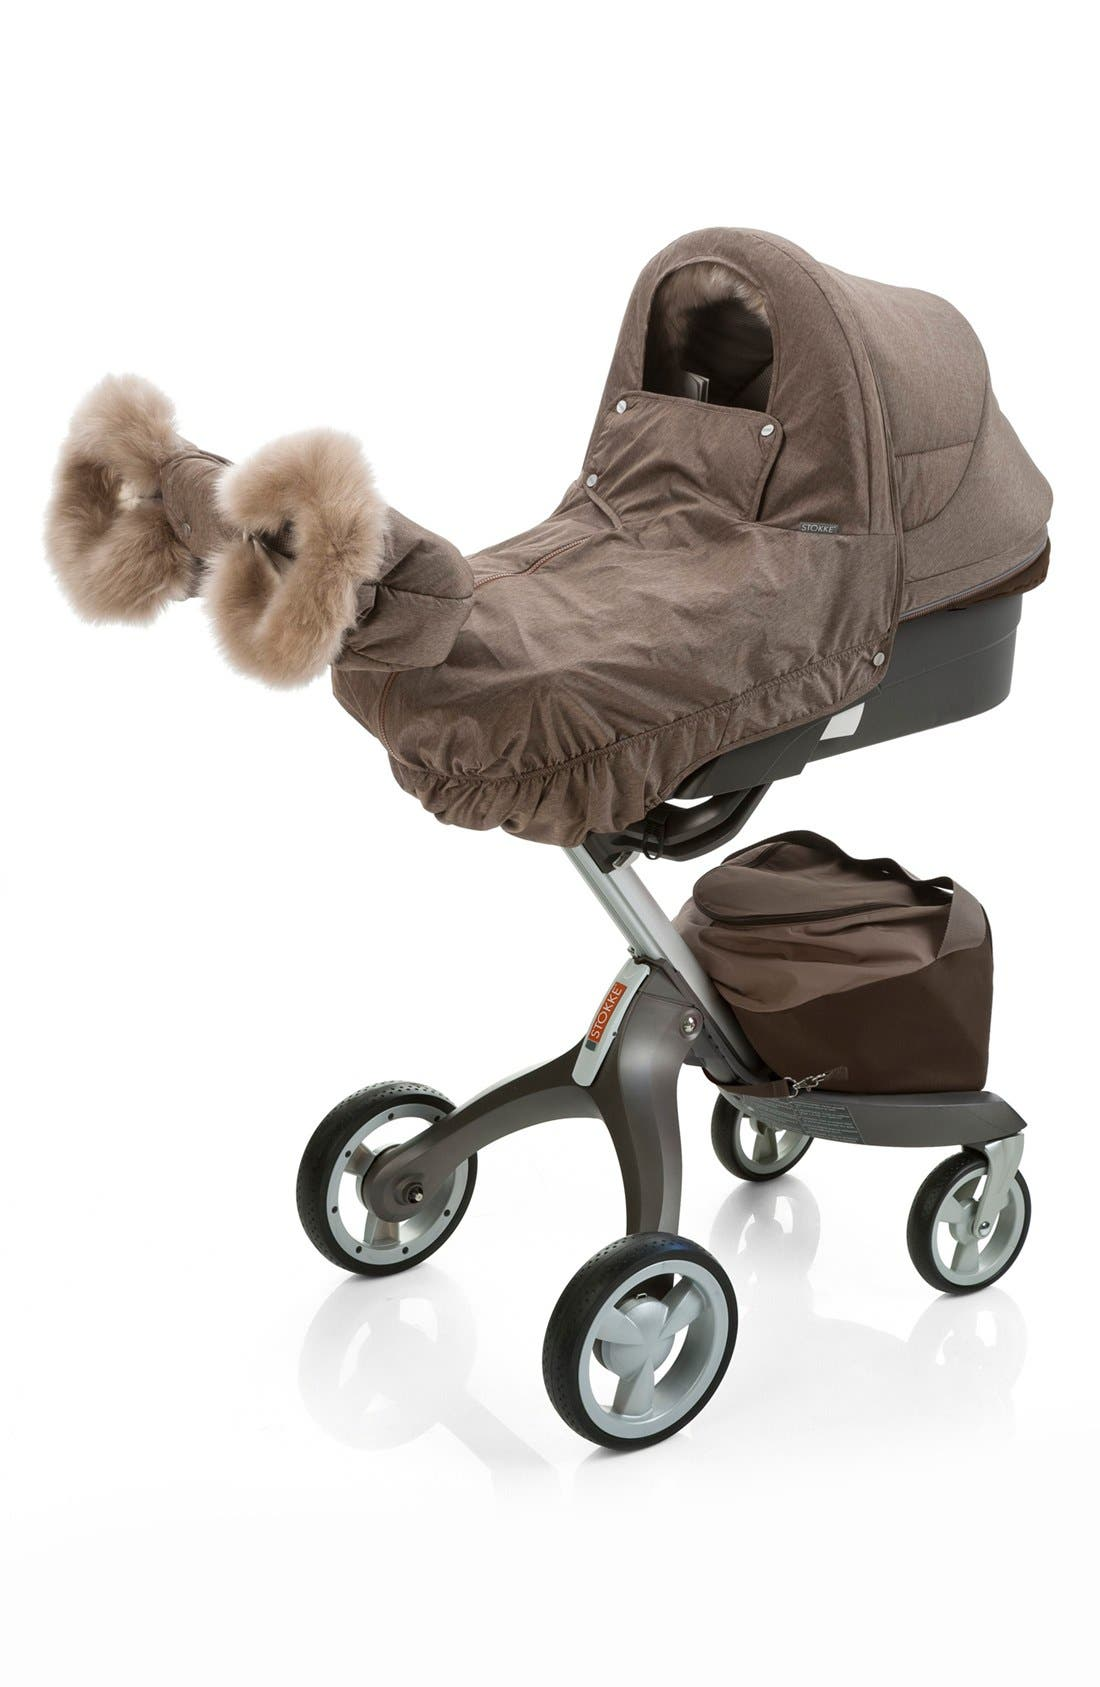 Main Image - Stokke Stroller Winter Kit